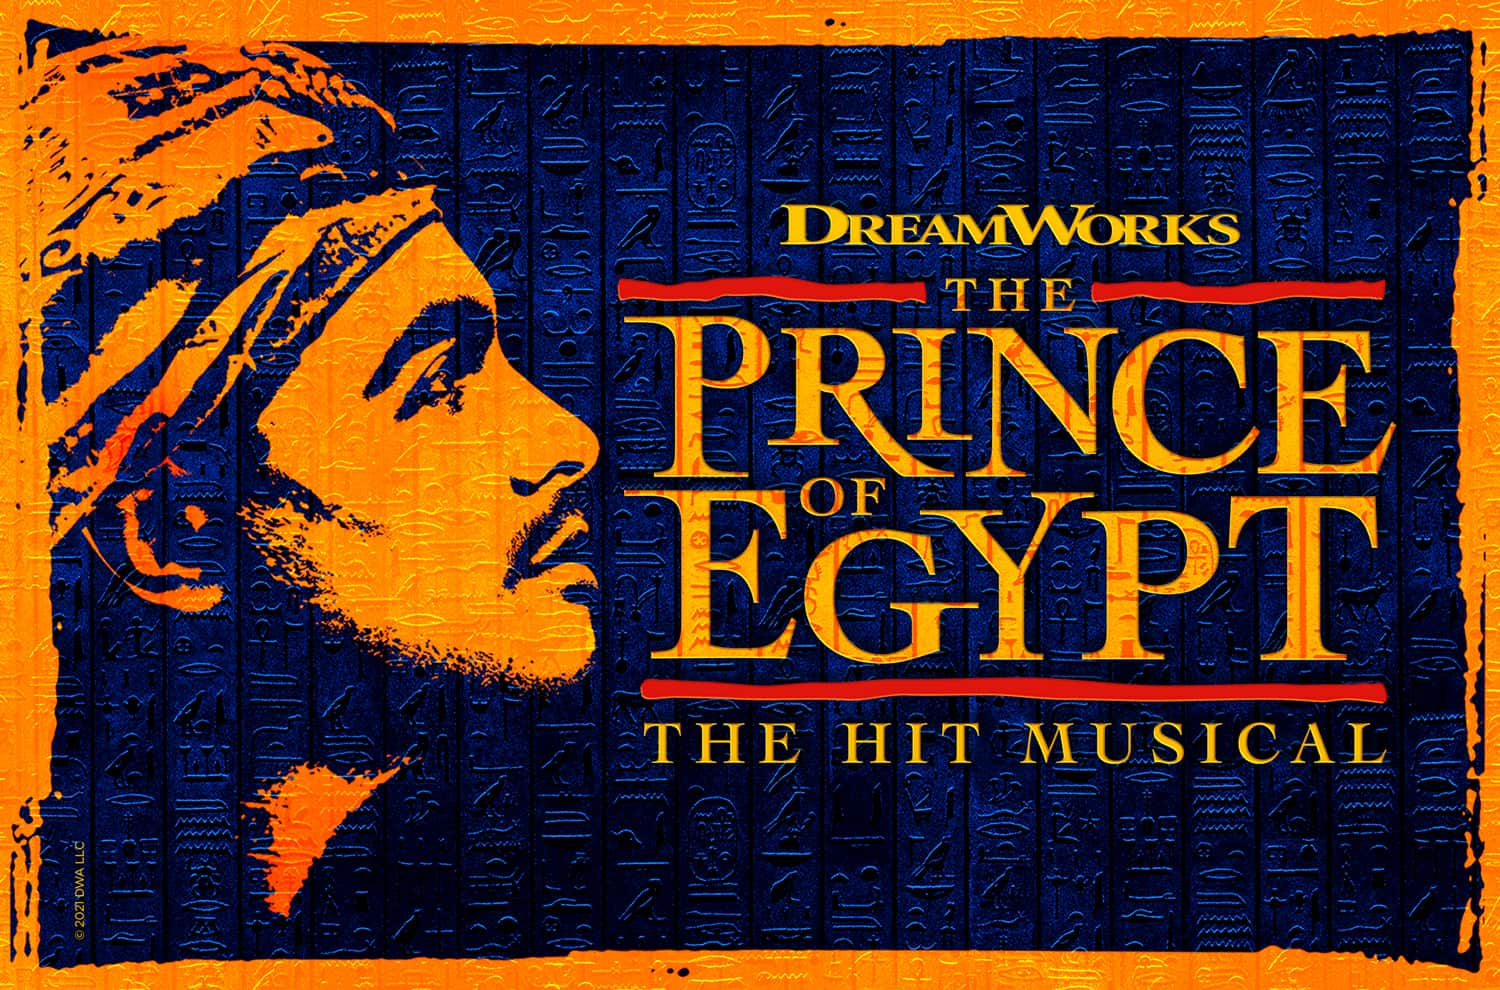 The Prince of Egypt is returning to London's Dominion Theatre.